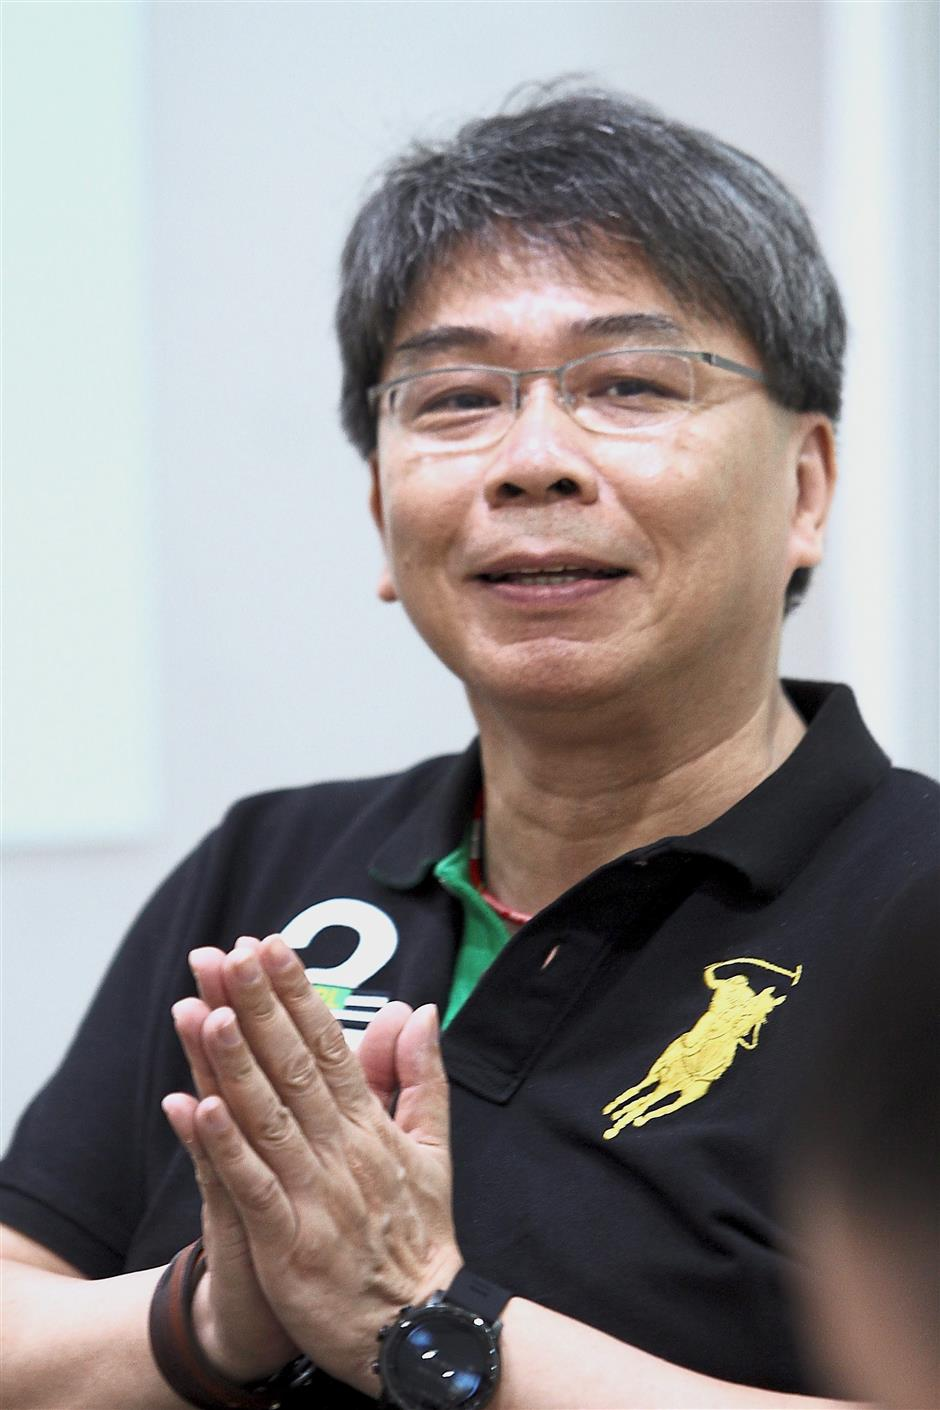 Wang says the vast and vibrant choice of delicacies in Ipoh is a very important factor in leading him to decide on retiring in Malaysia within the next 10 years.